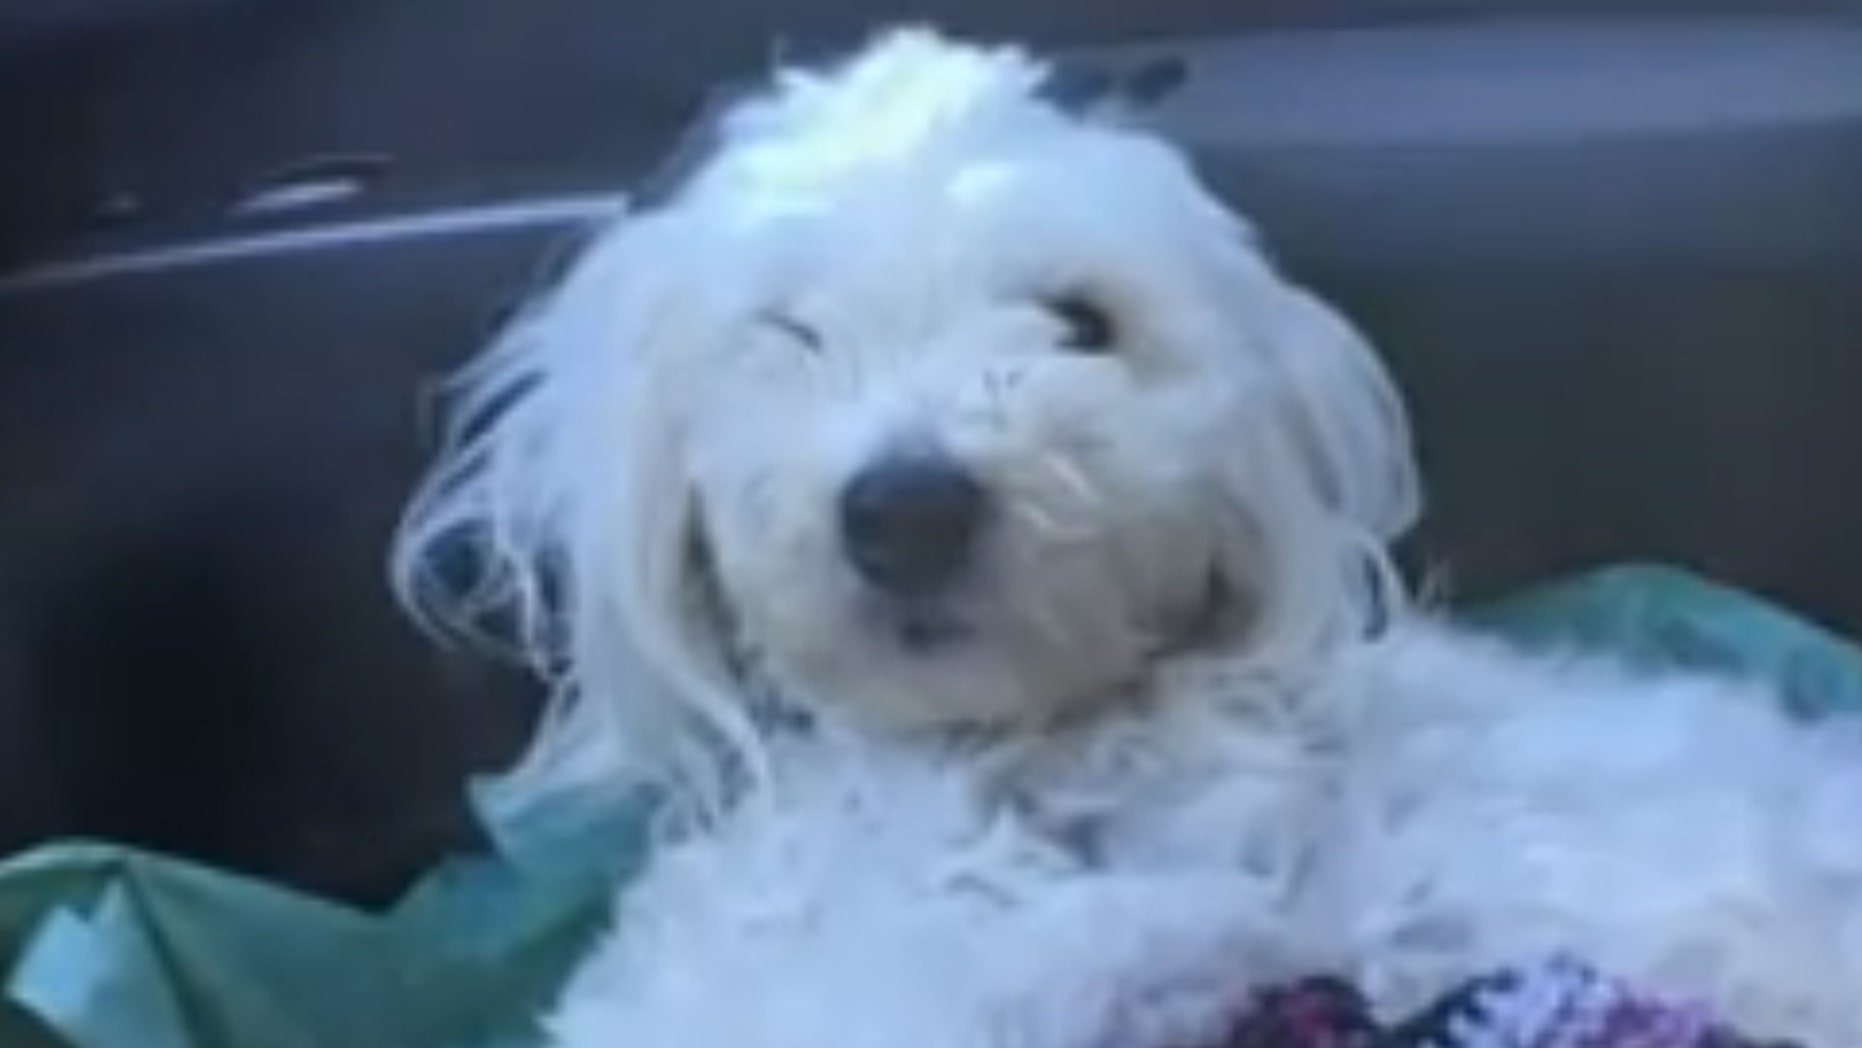 Rex, an 18-month-old Bichon and Maltese mix puppy, was thrown out of a car Thursday on a California interstate after his back legs were tied up. (Fox 40)